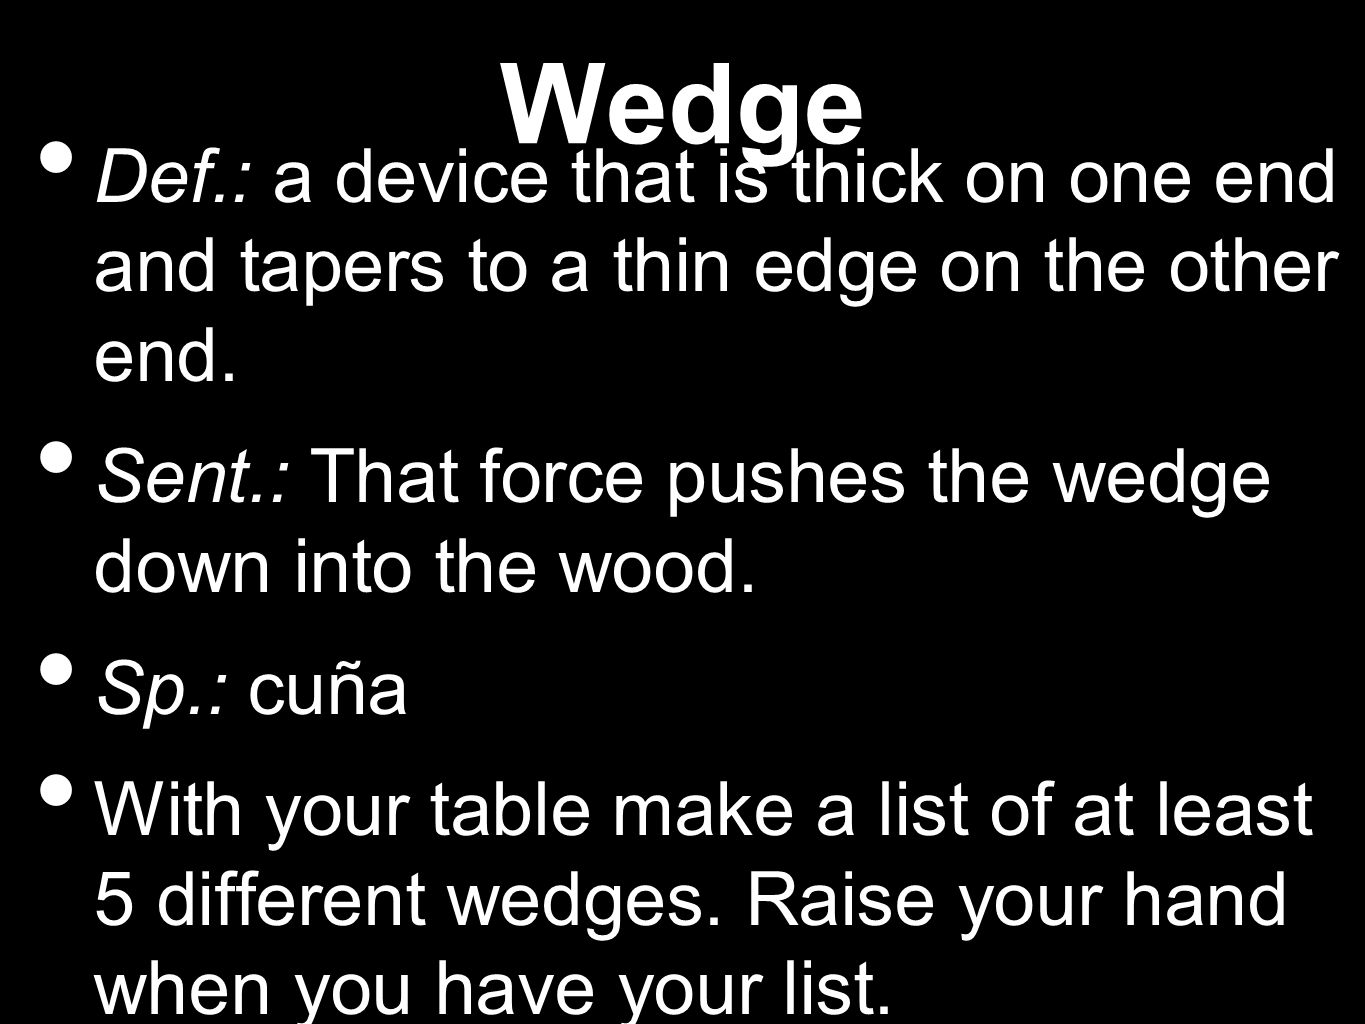 Wedge Def.: a device that is thick on one end and tapers to a thin edge on the other end.